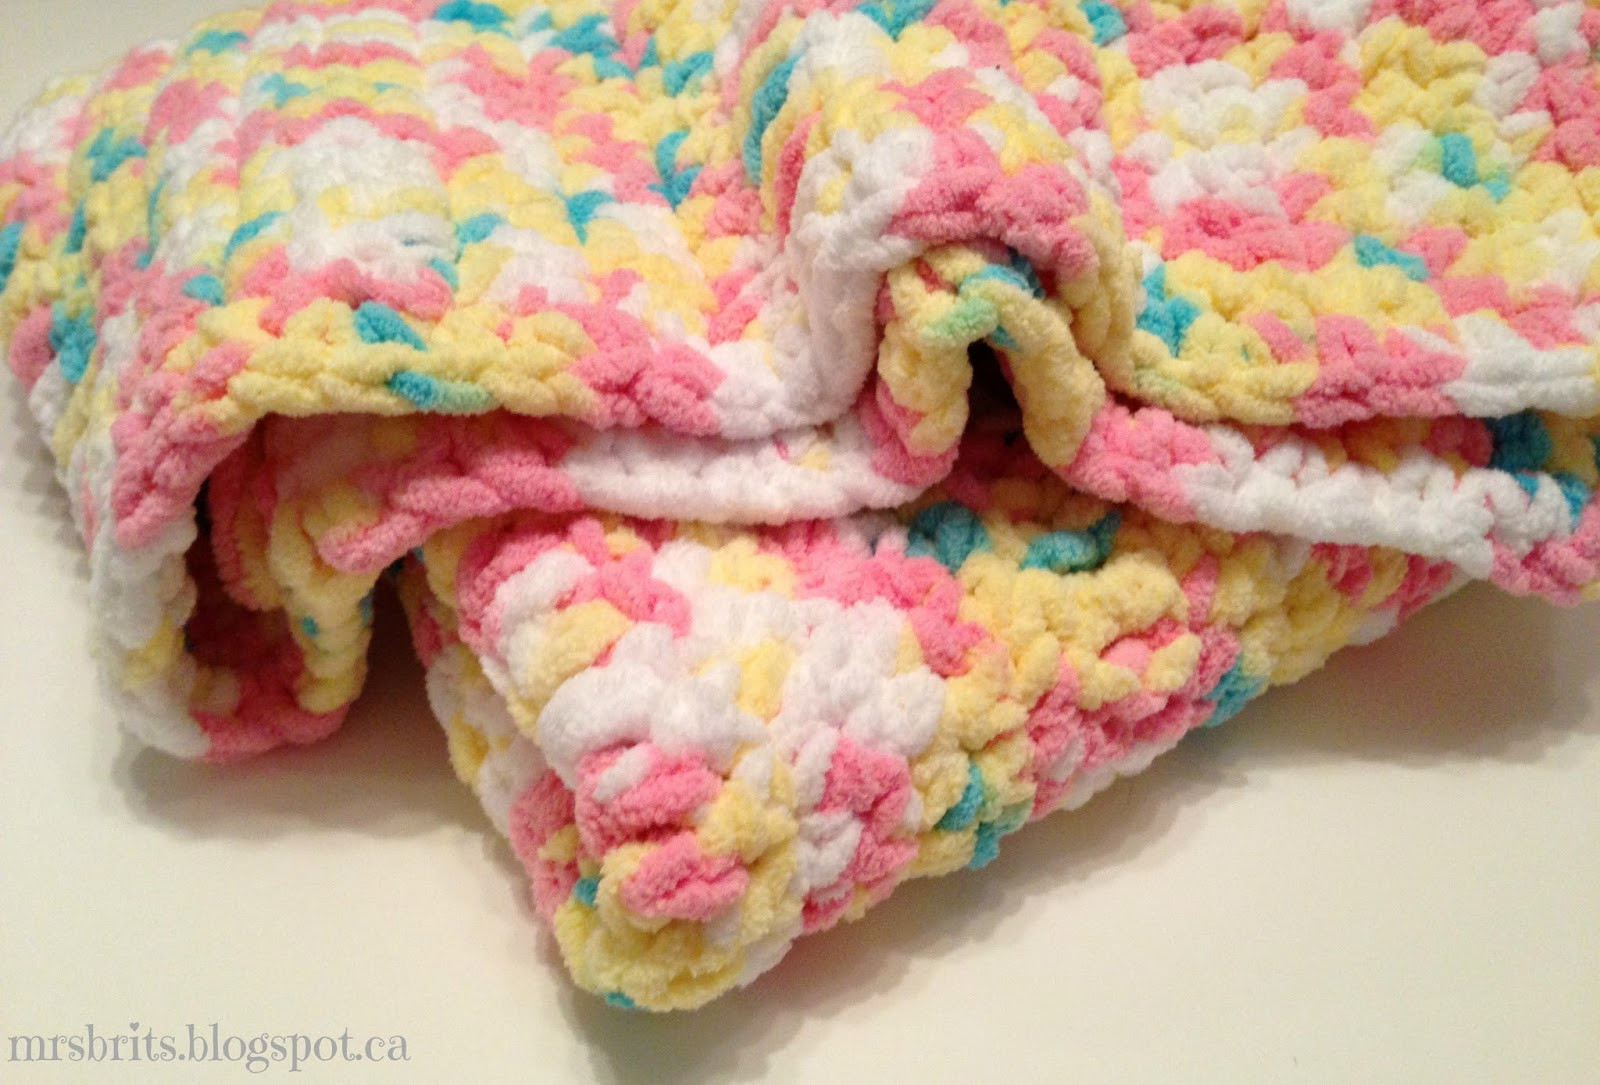 Beautiful Mrsbrits Sweet and Chunky Baby Afghan Crochet Pattern Crochet Patterns Using Bernat Baby Blanket Yarn Of Superb 47 Models Crochet Patterns Using Bernat Baby Blanket Yarn